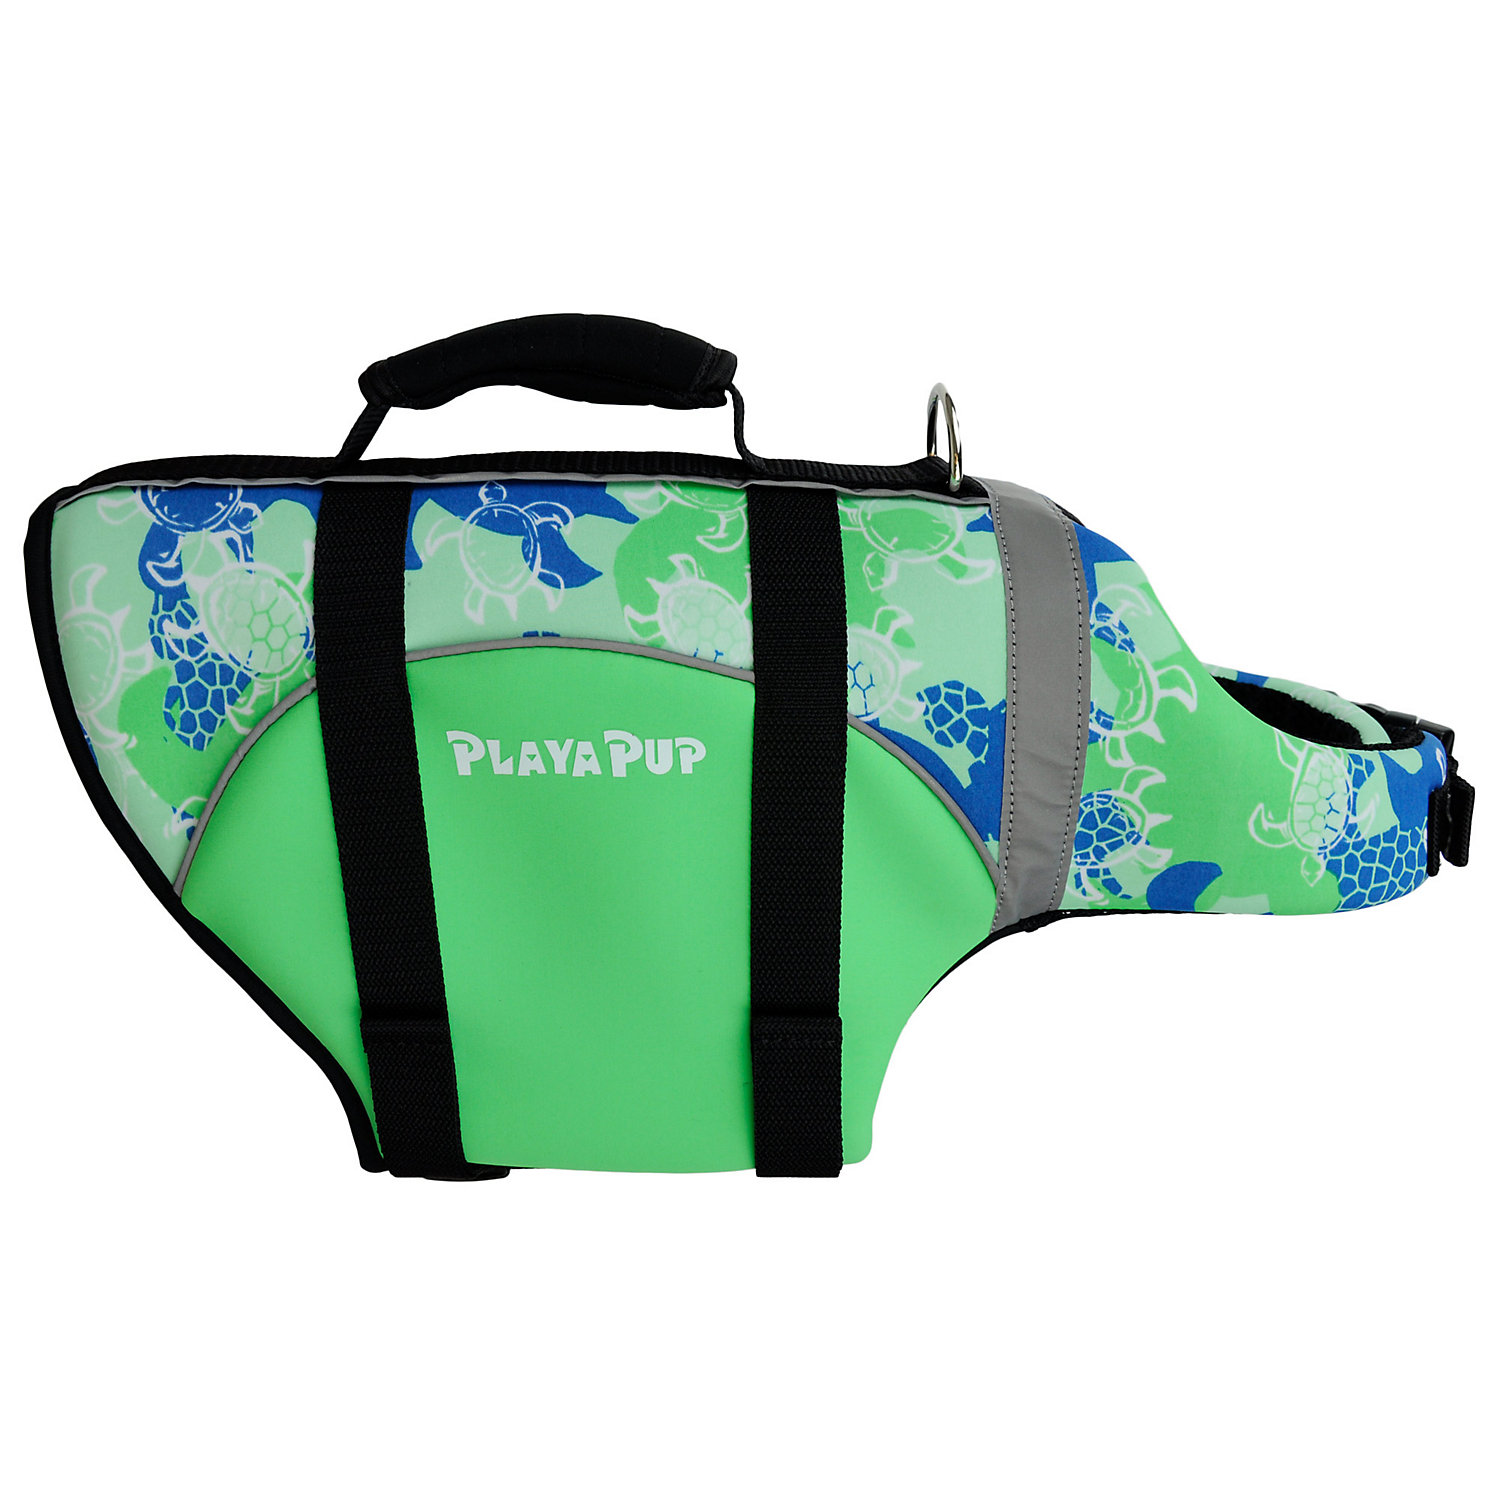 Image of Playa Pup Green Dog Flotation Vest